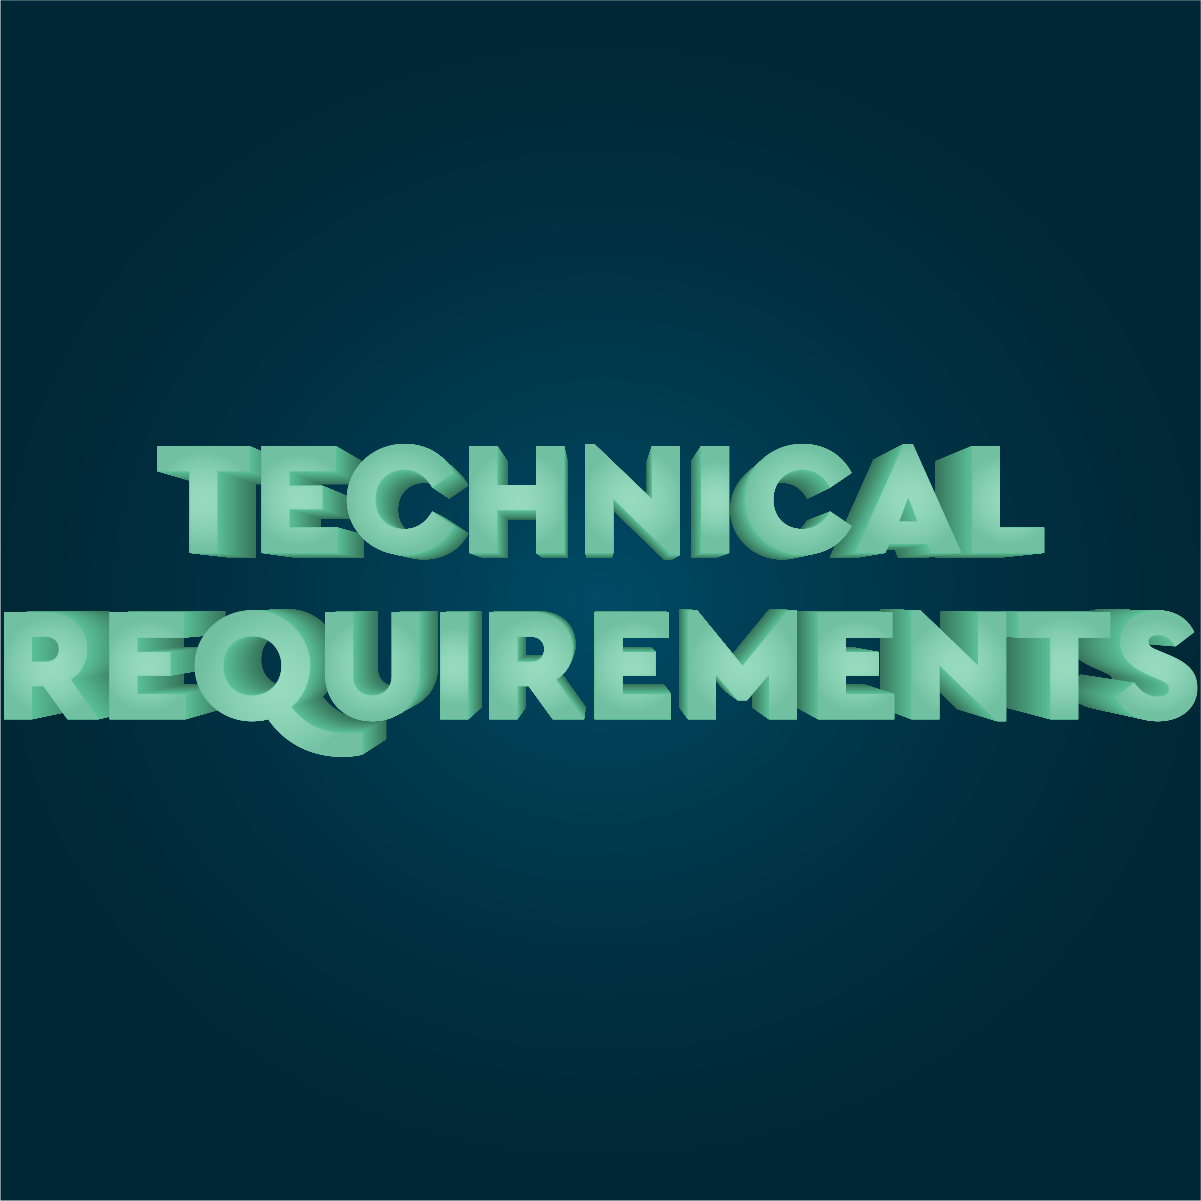 Step 4: Technical Requirements image